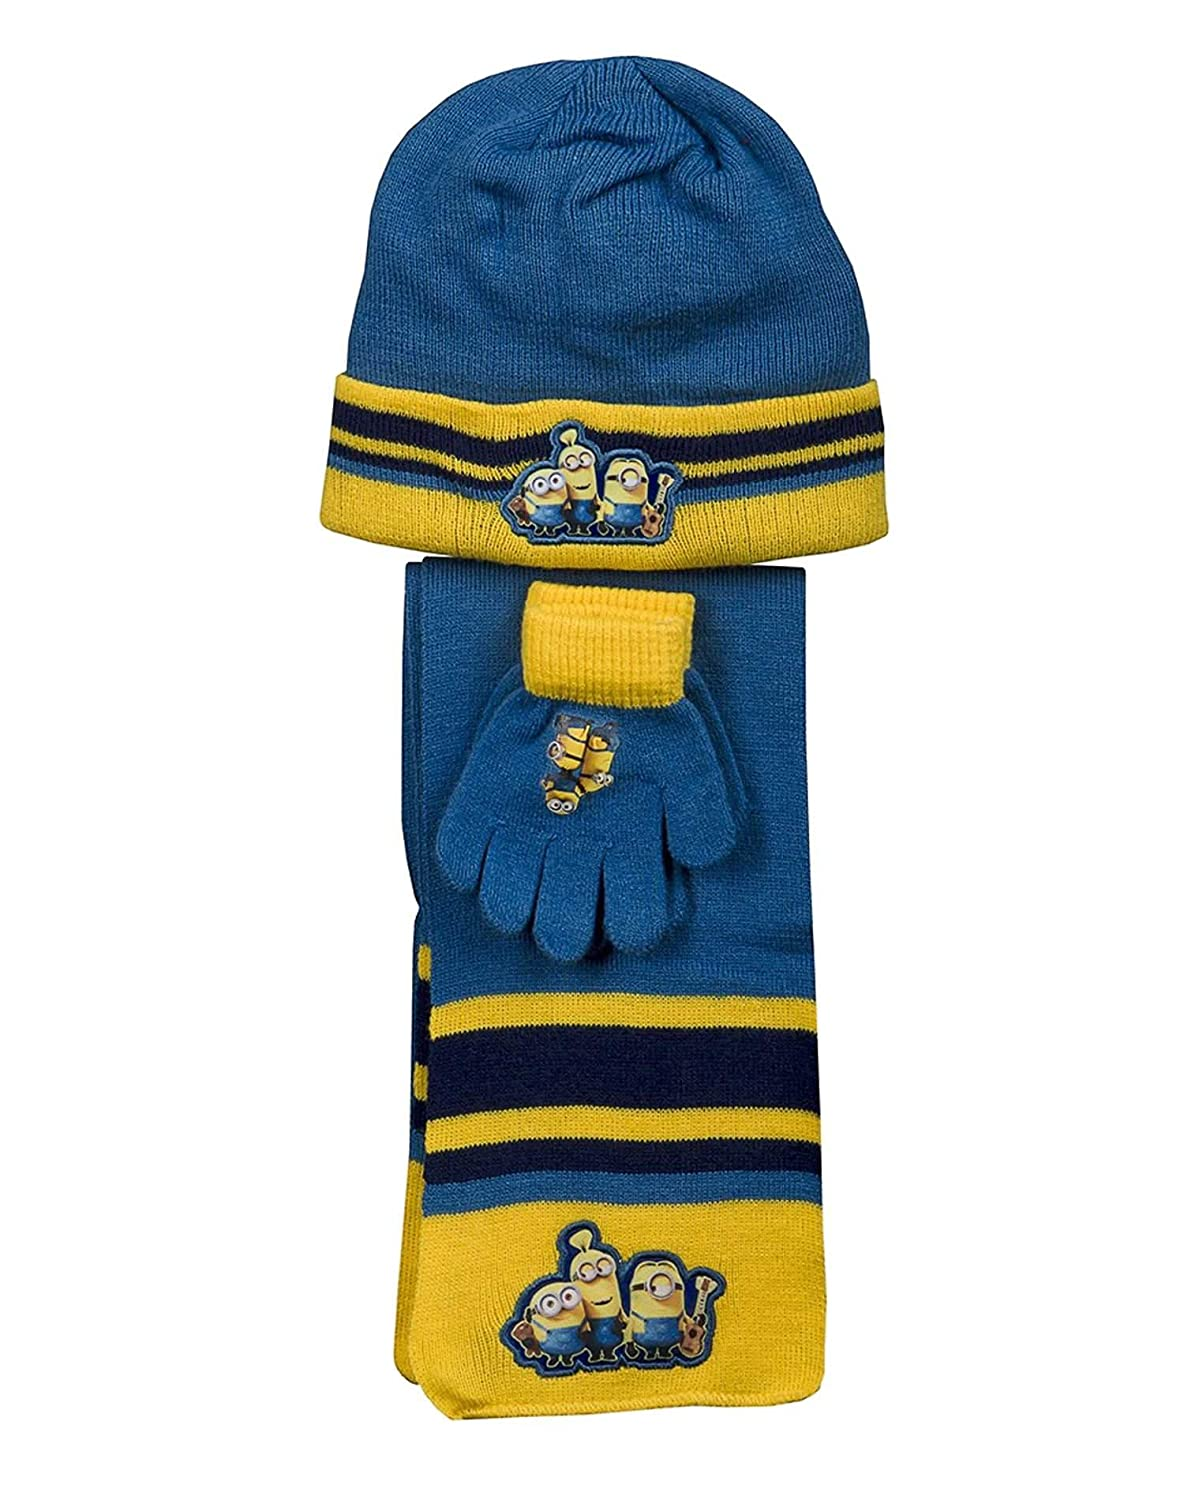 Official Boys Despicable Me Minions Gloves Beanie Hat /& Scarf Set One size 4-10 Years